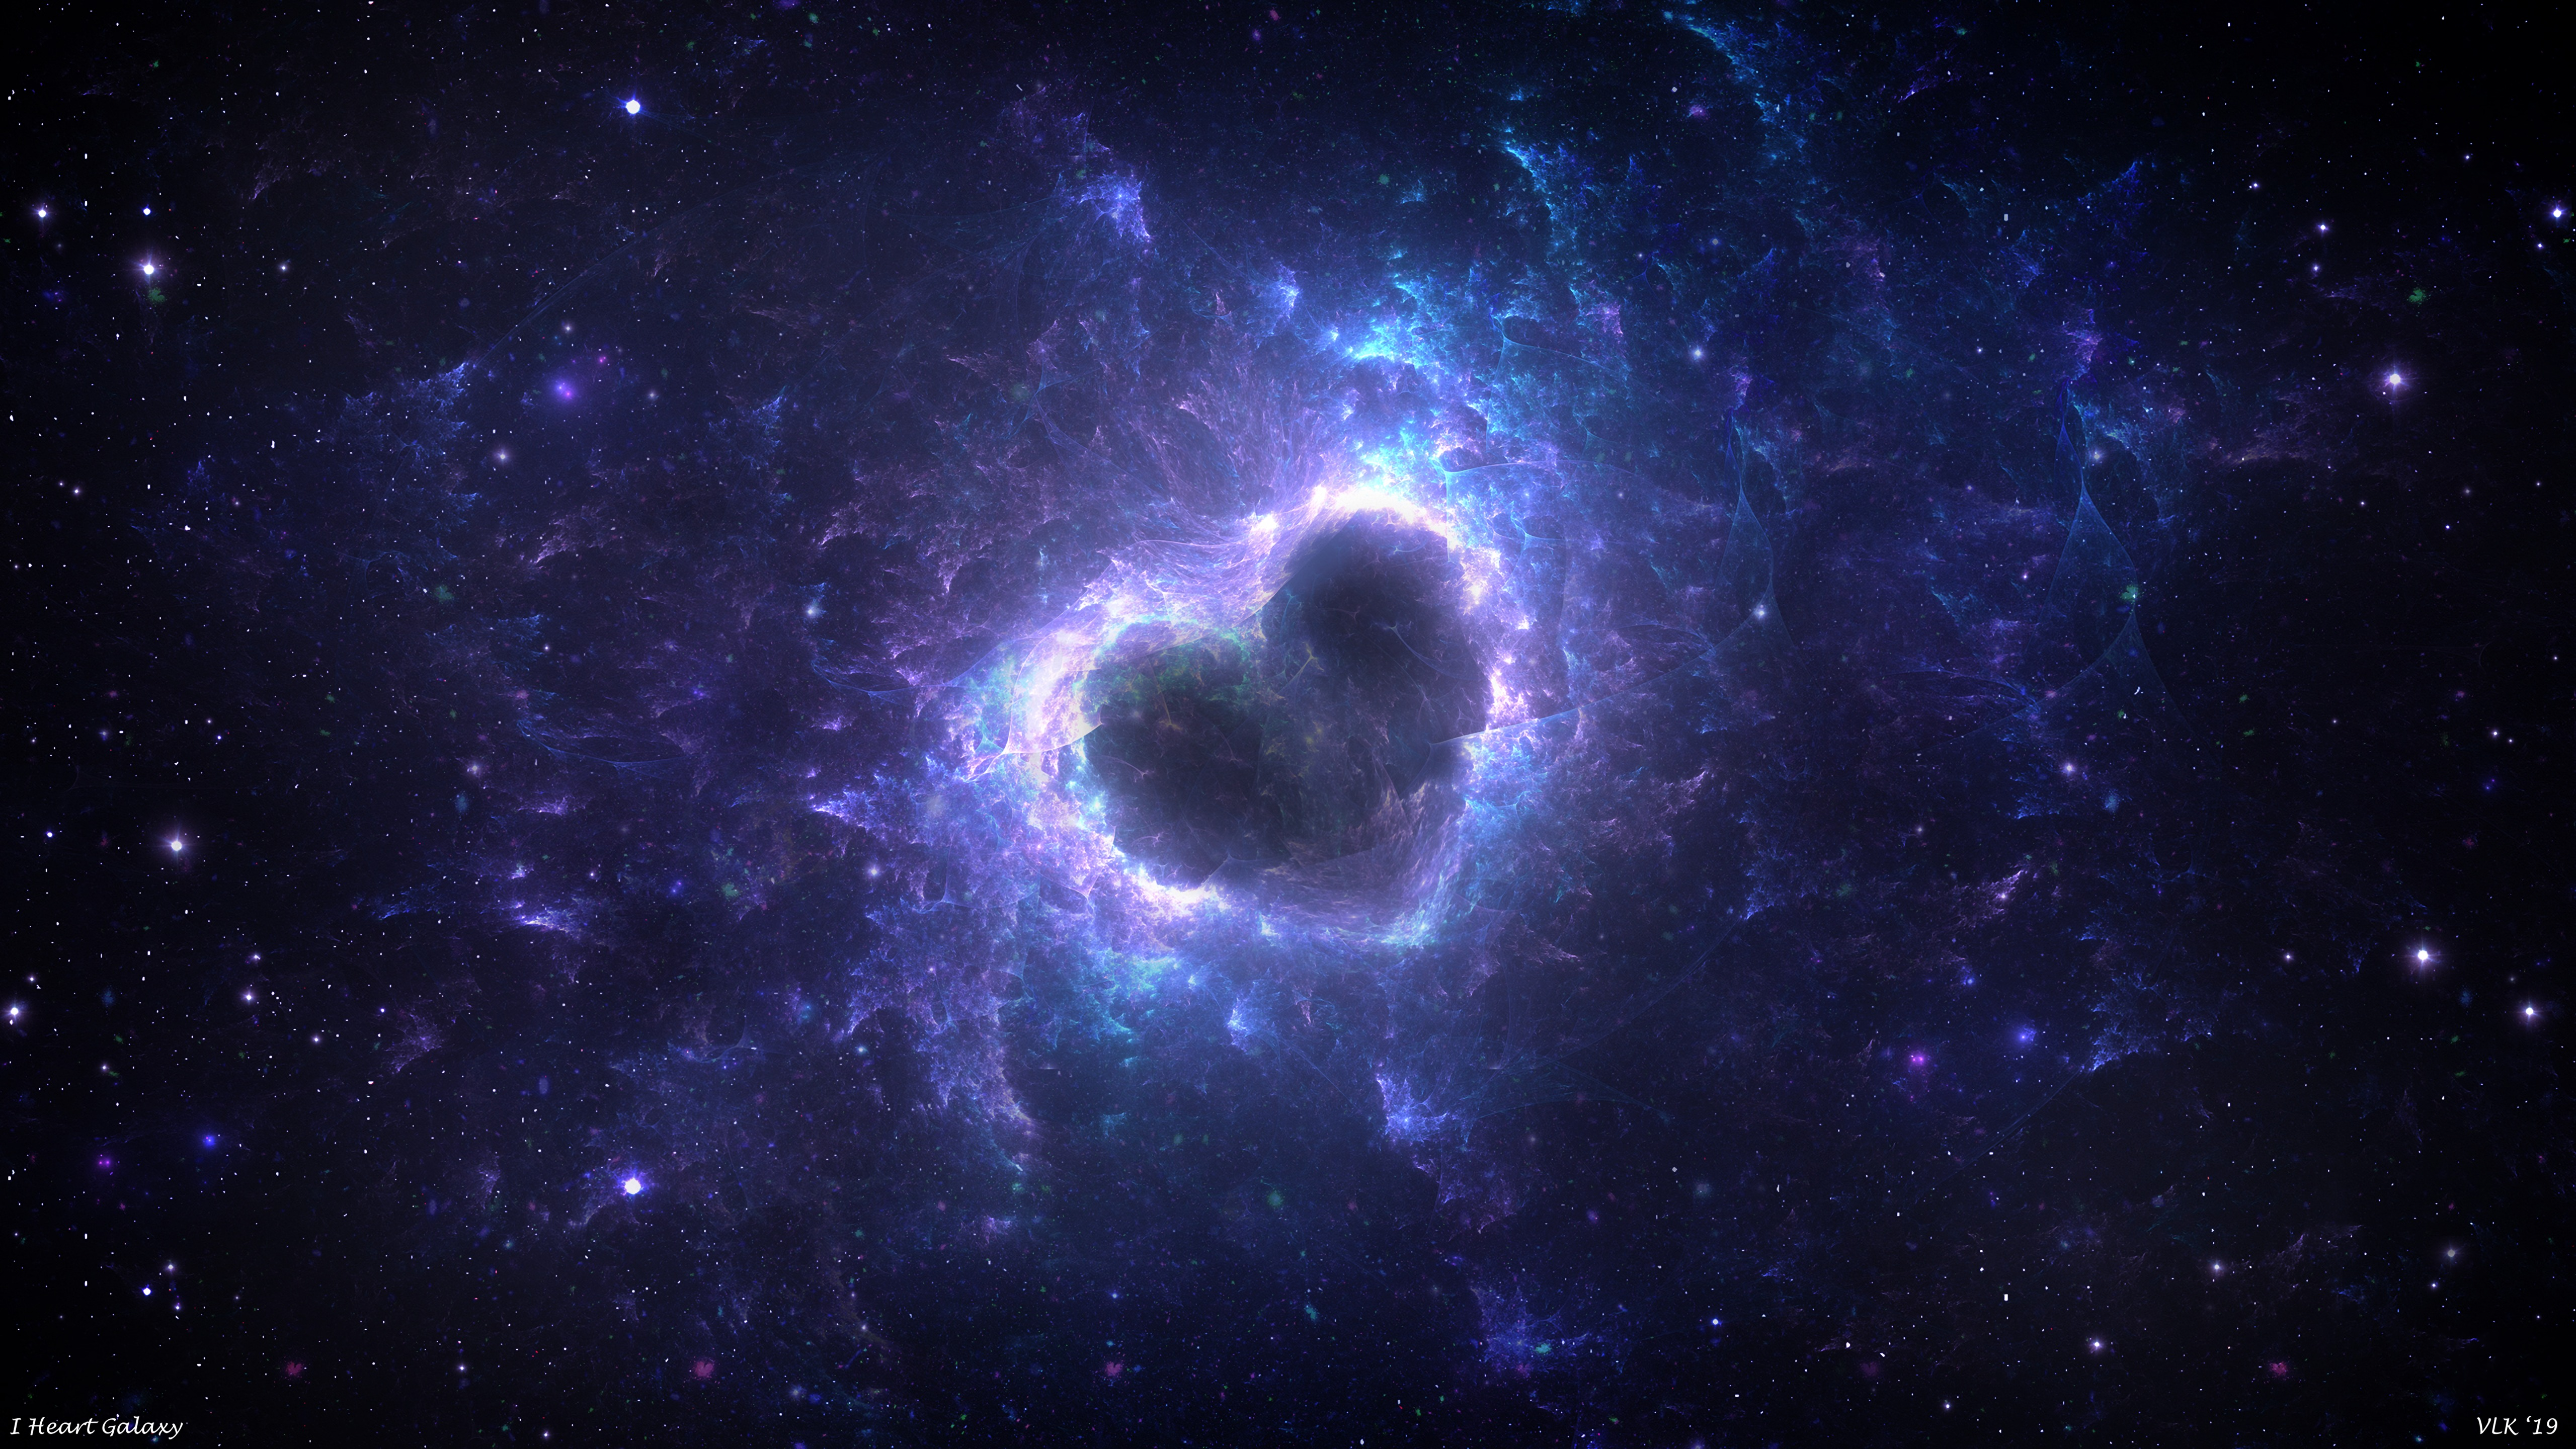 61581 download wallpaper Love, Nebula, Heart, Glow, Universe, Energy screensavers and pictures for free